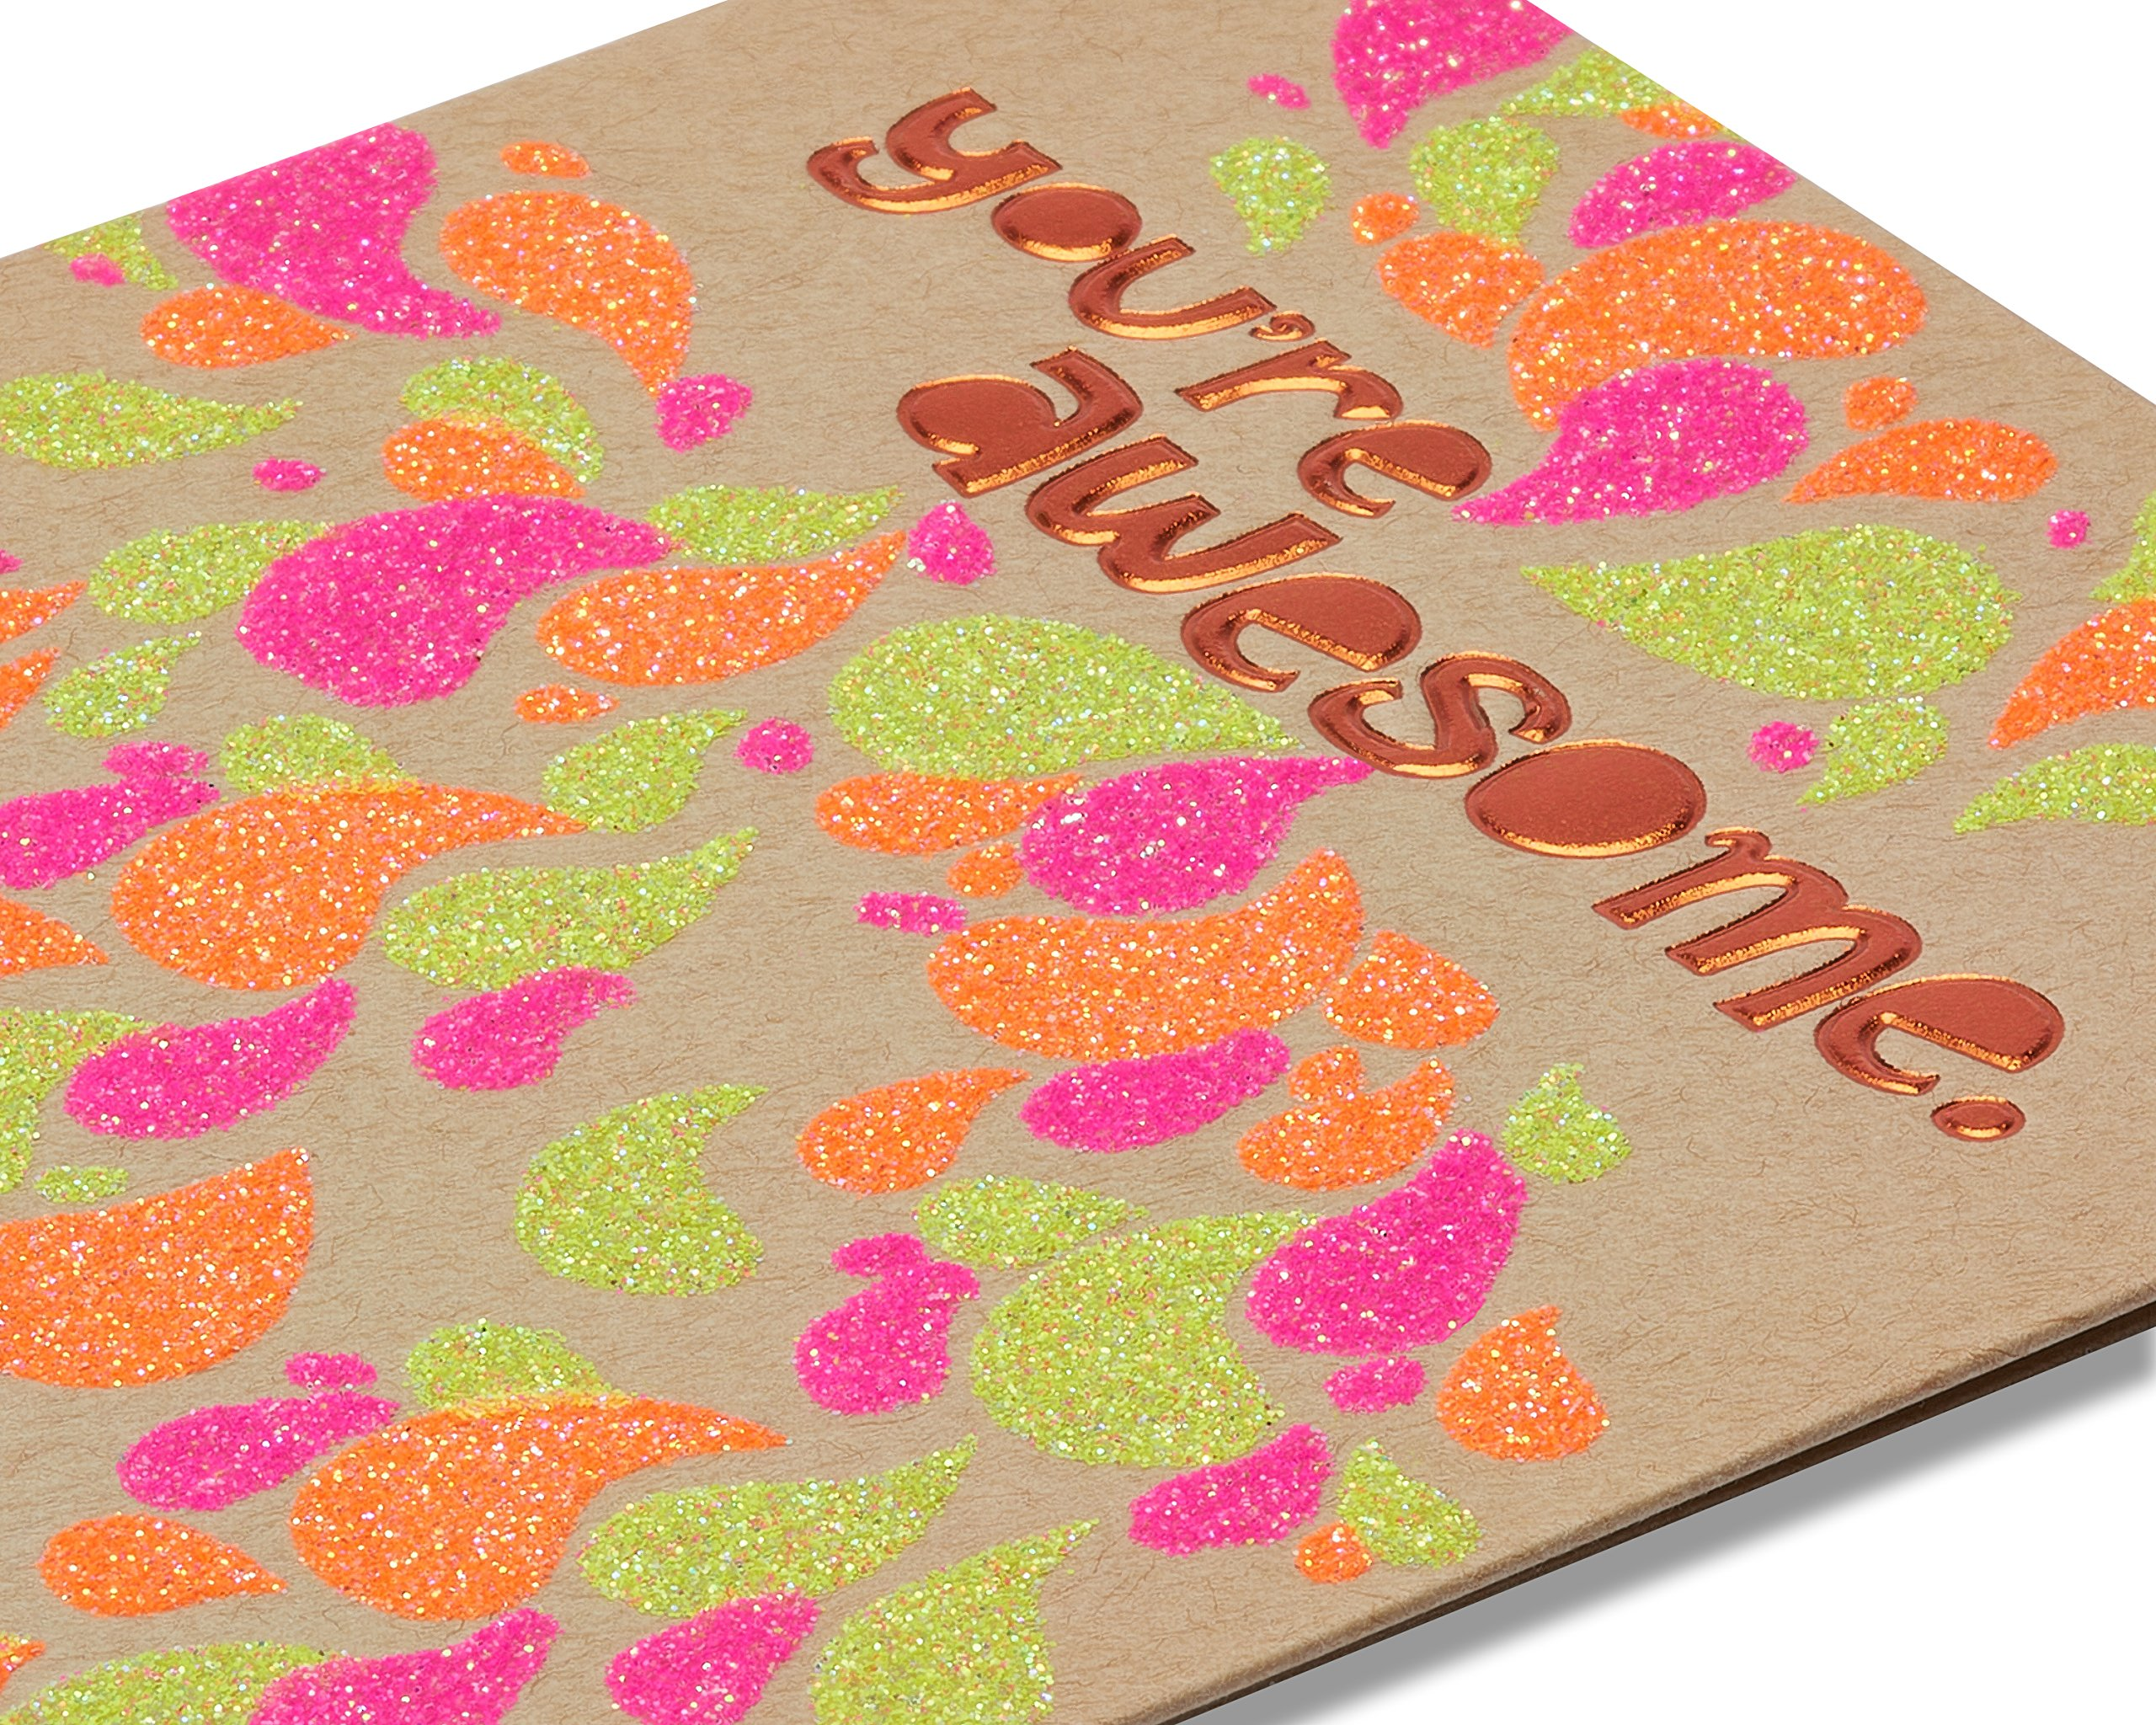 American Greetings You're Awesome Birthday Card with Glitter - 5856772 by American Greetings (Image #4)